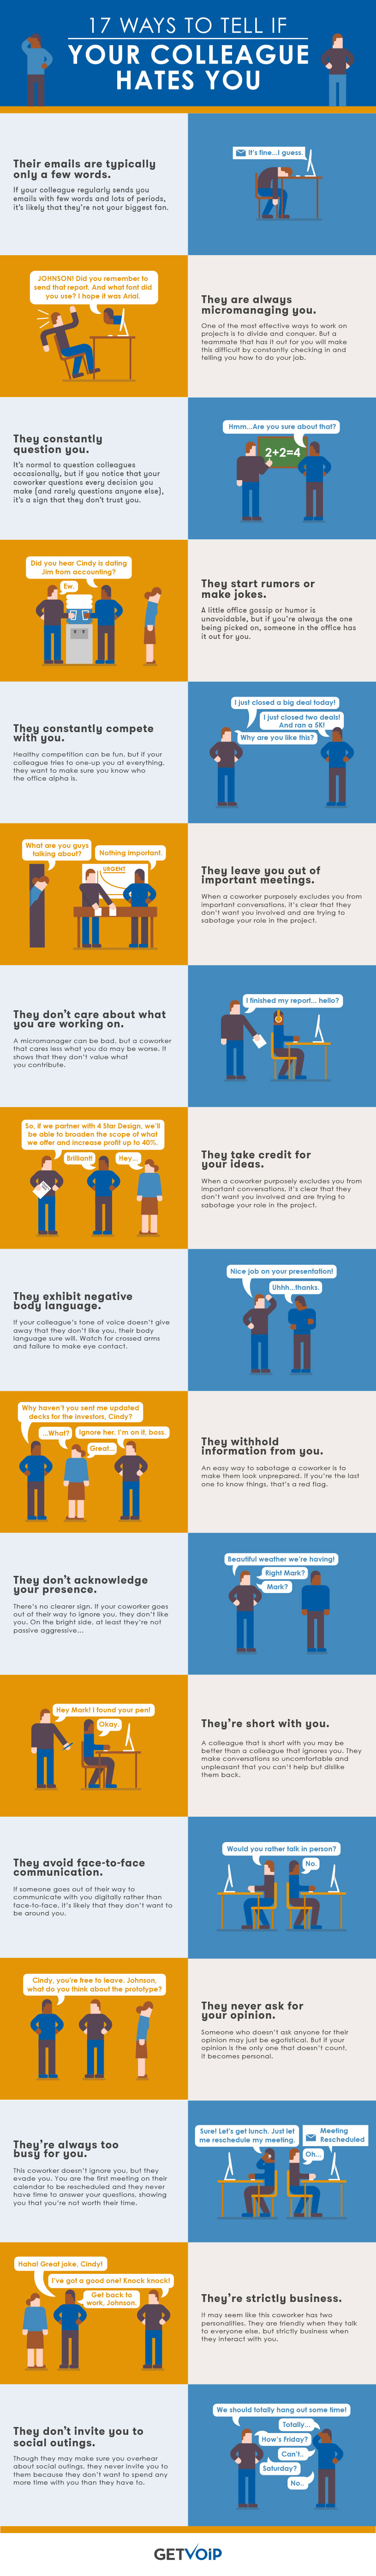 1474550722_colleague-hates-you-infographic